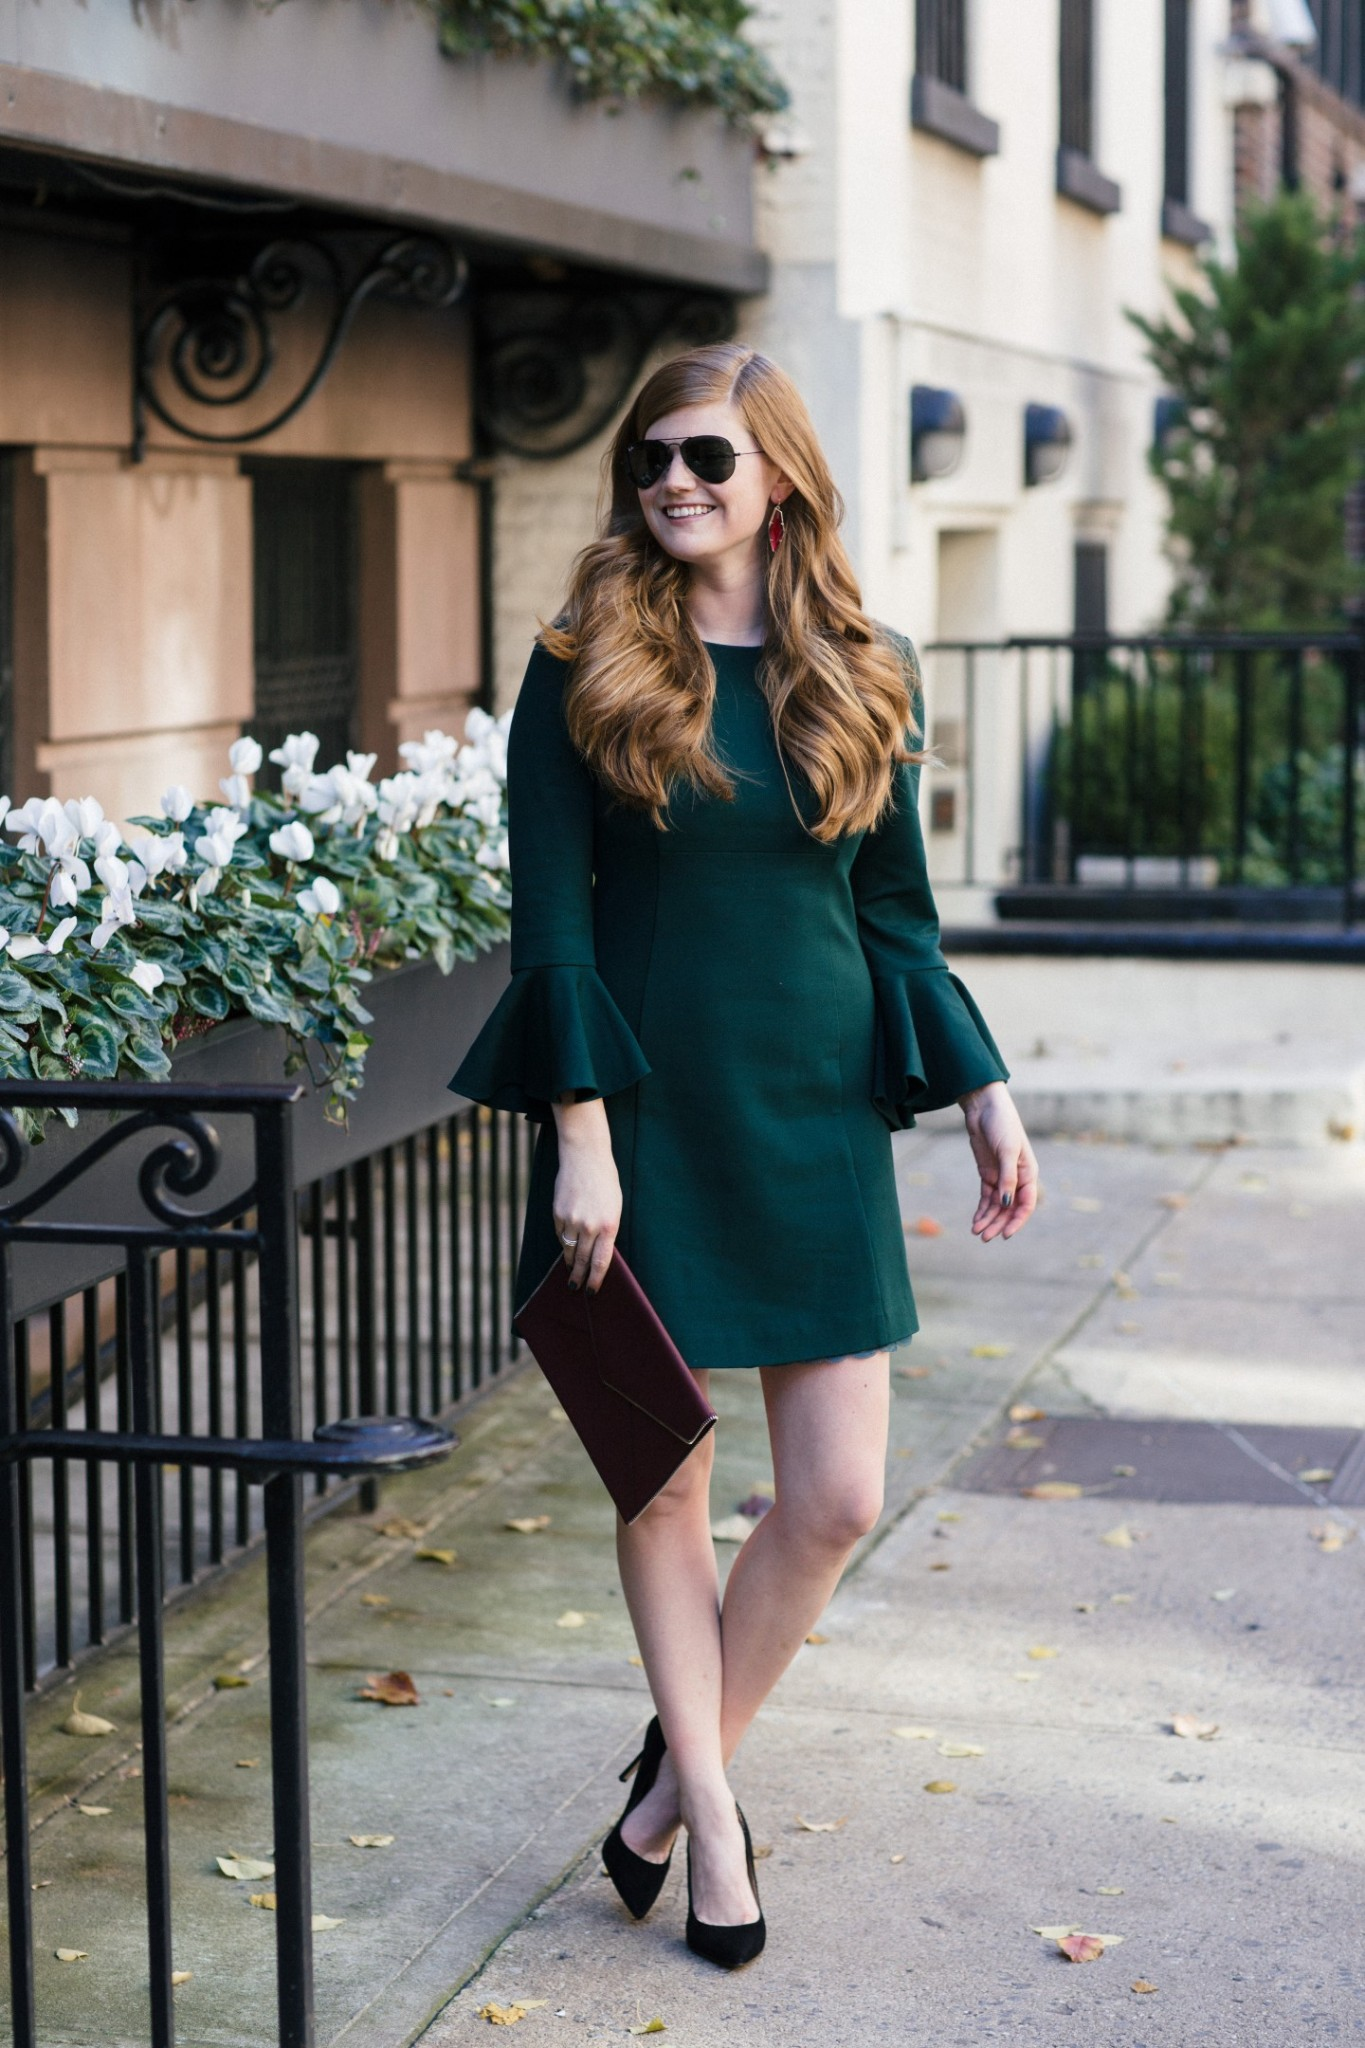 Lifestyle blogger Mollie Sheperdson shares a holiday party look with Rent the Runway